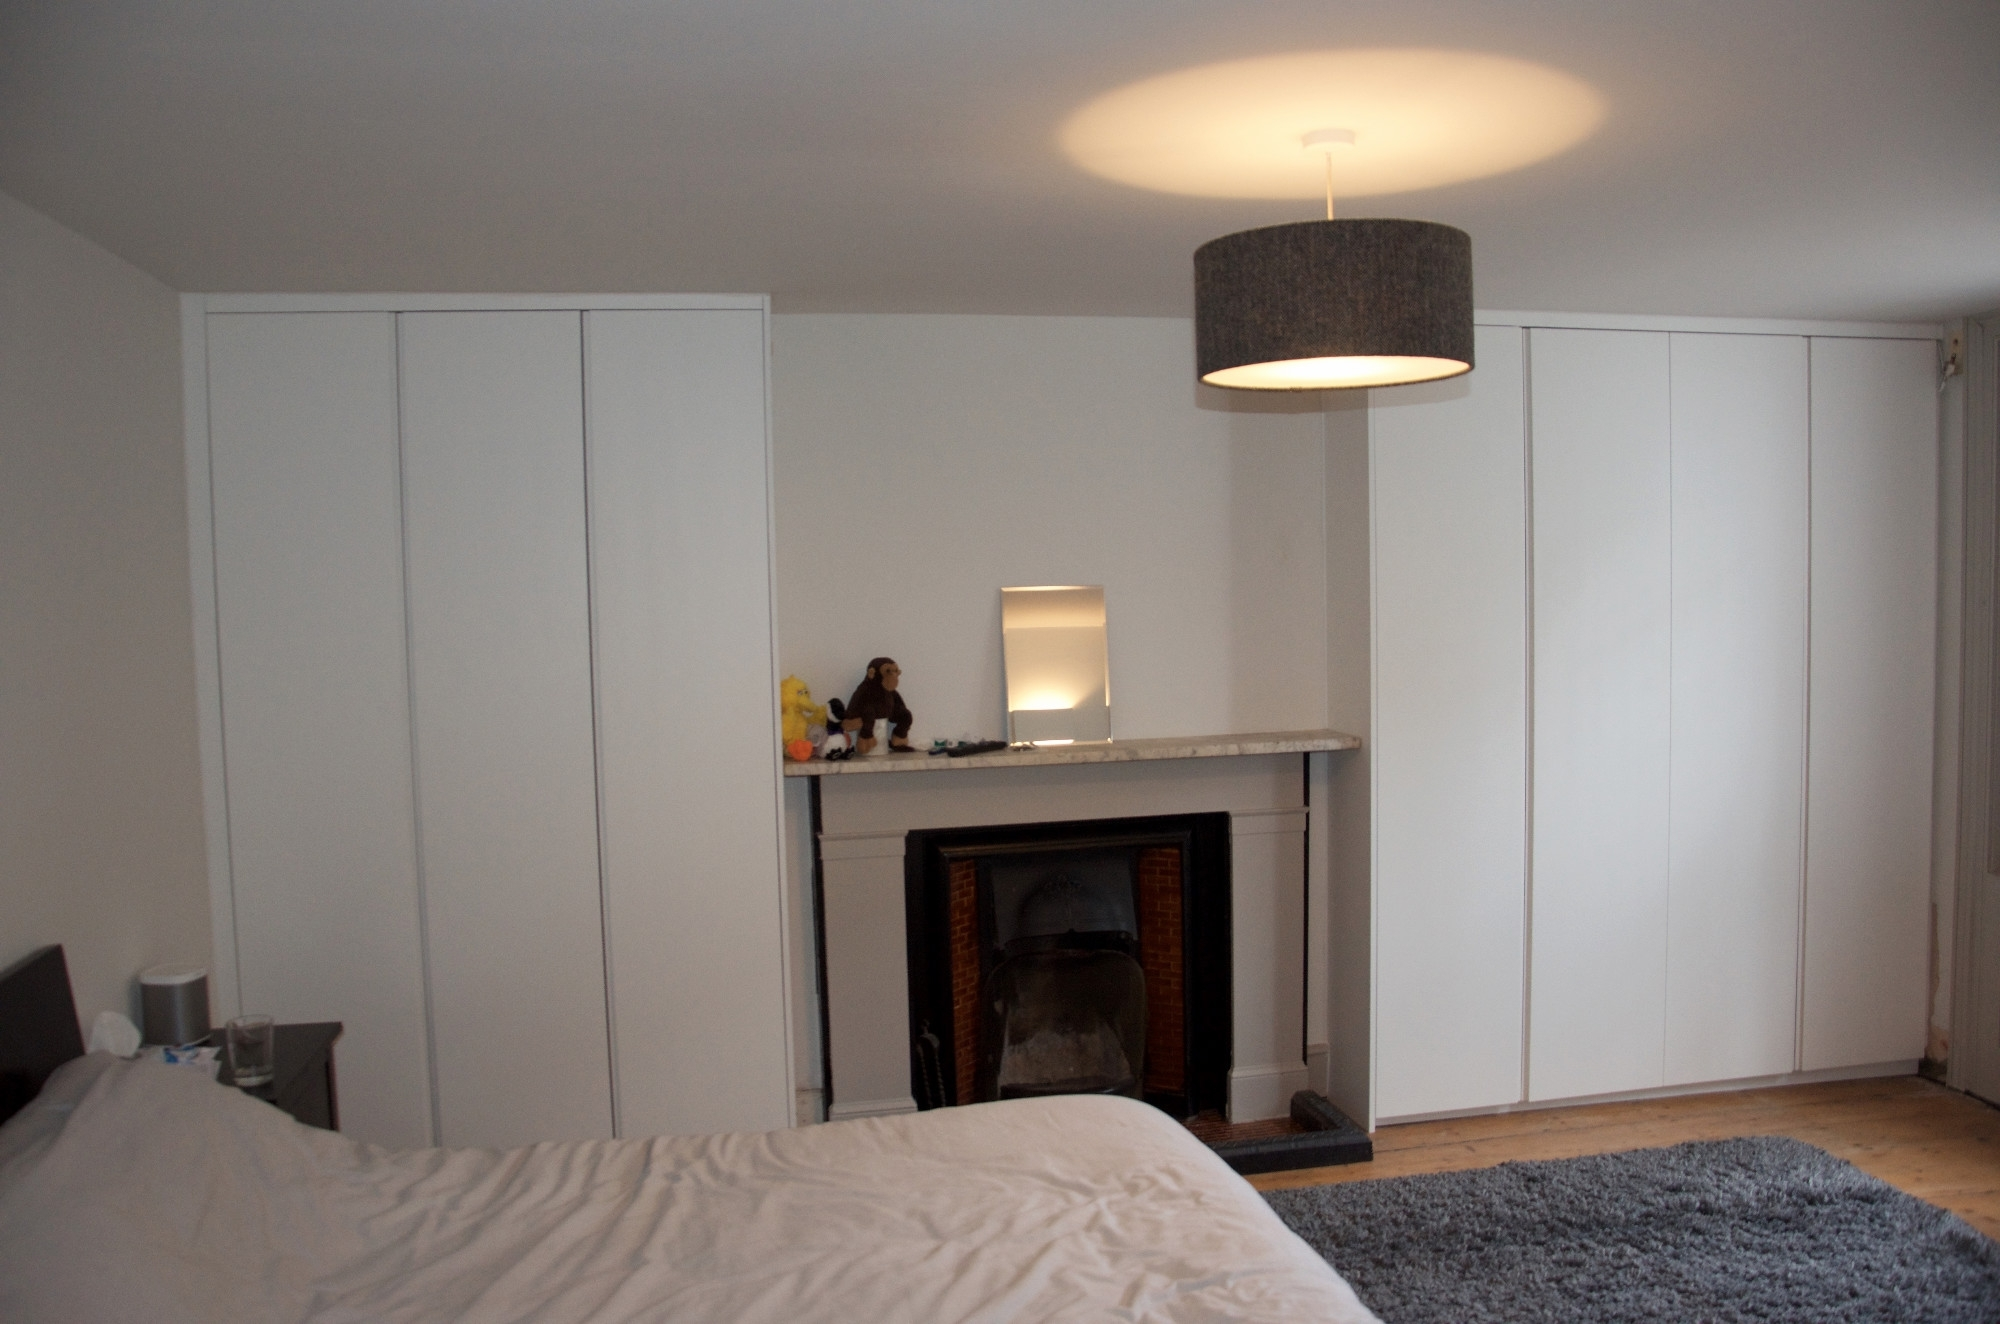 Well Known Alcove Wardrobes With Handleless Spray Painted Doors, Clapham Throughout Alcove Wardrobes (View 11 of 15)